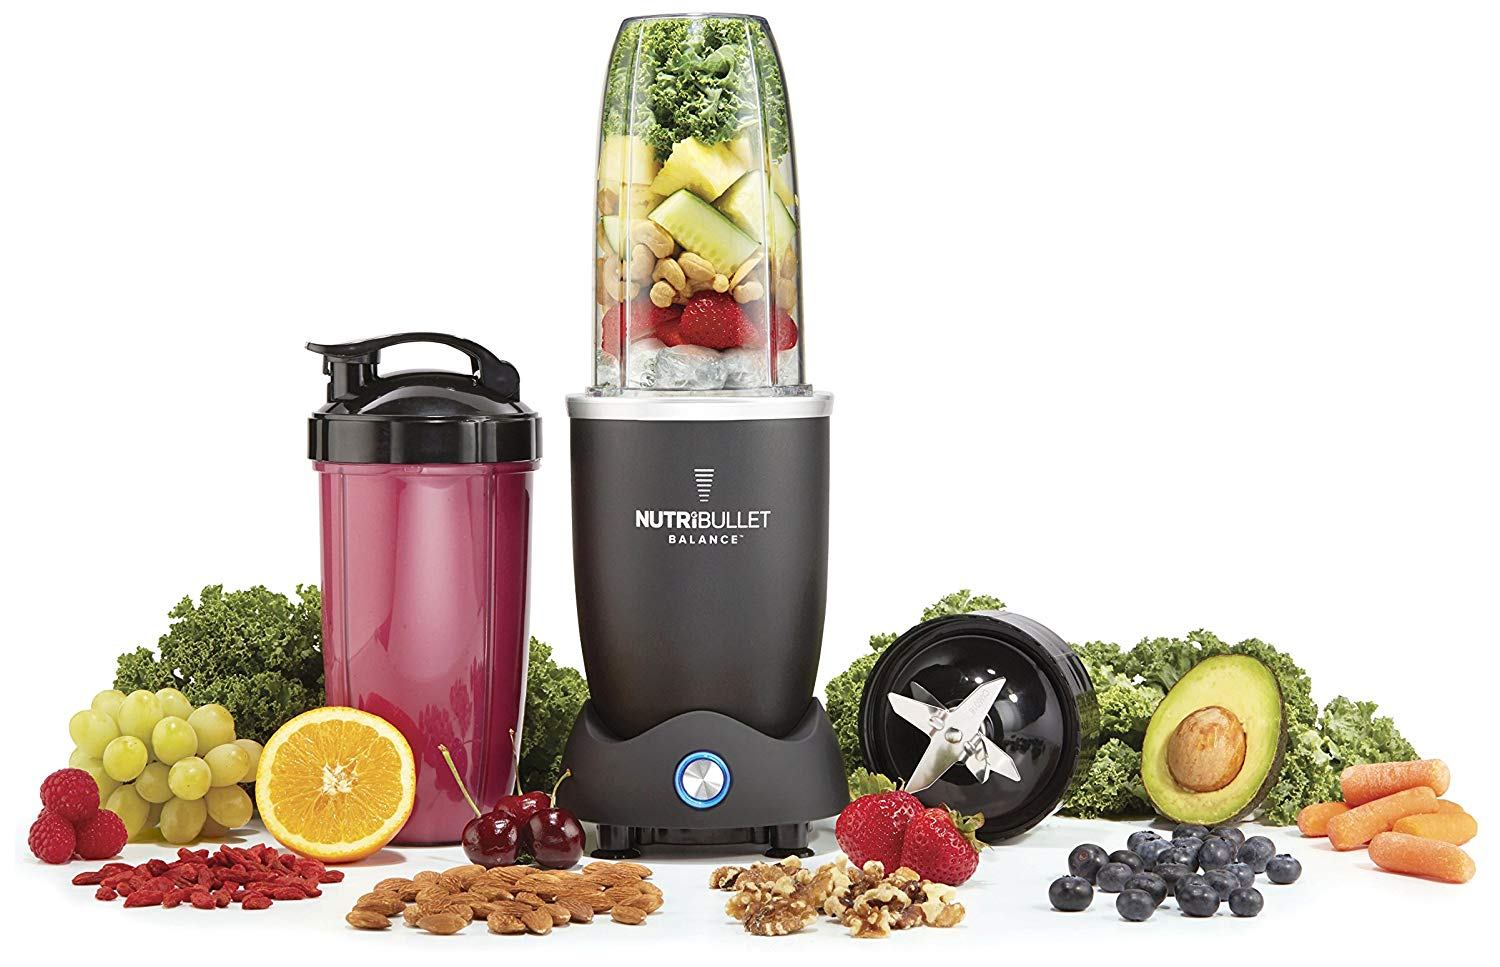 The NutriBullet Balance, Bluetooth Enabled Smart Blender